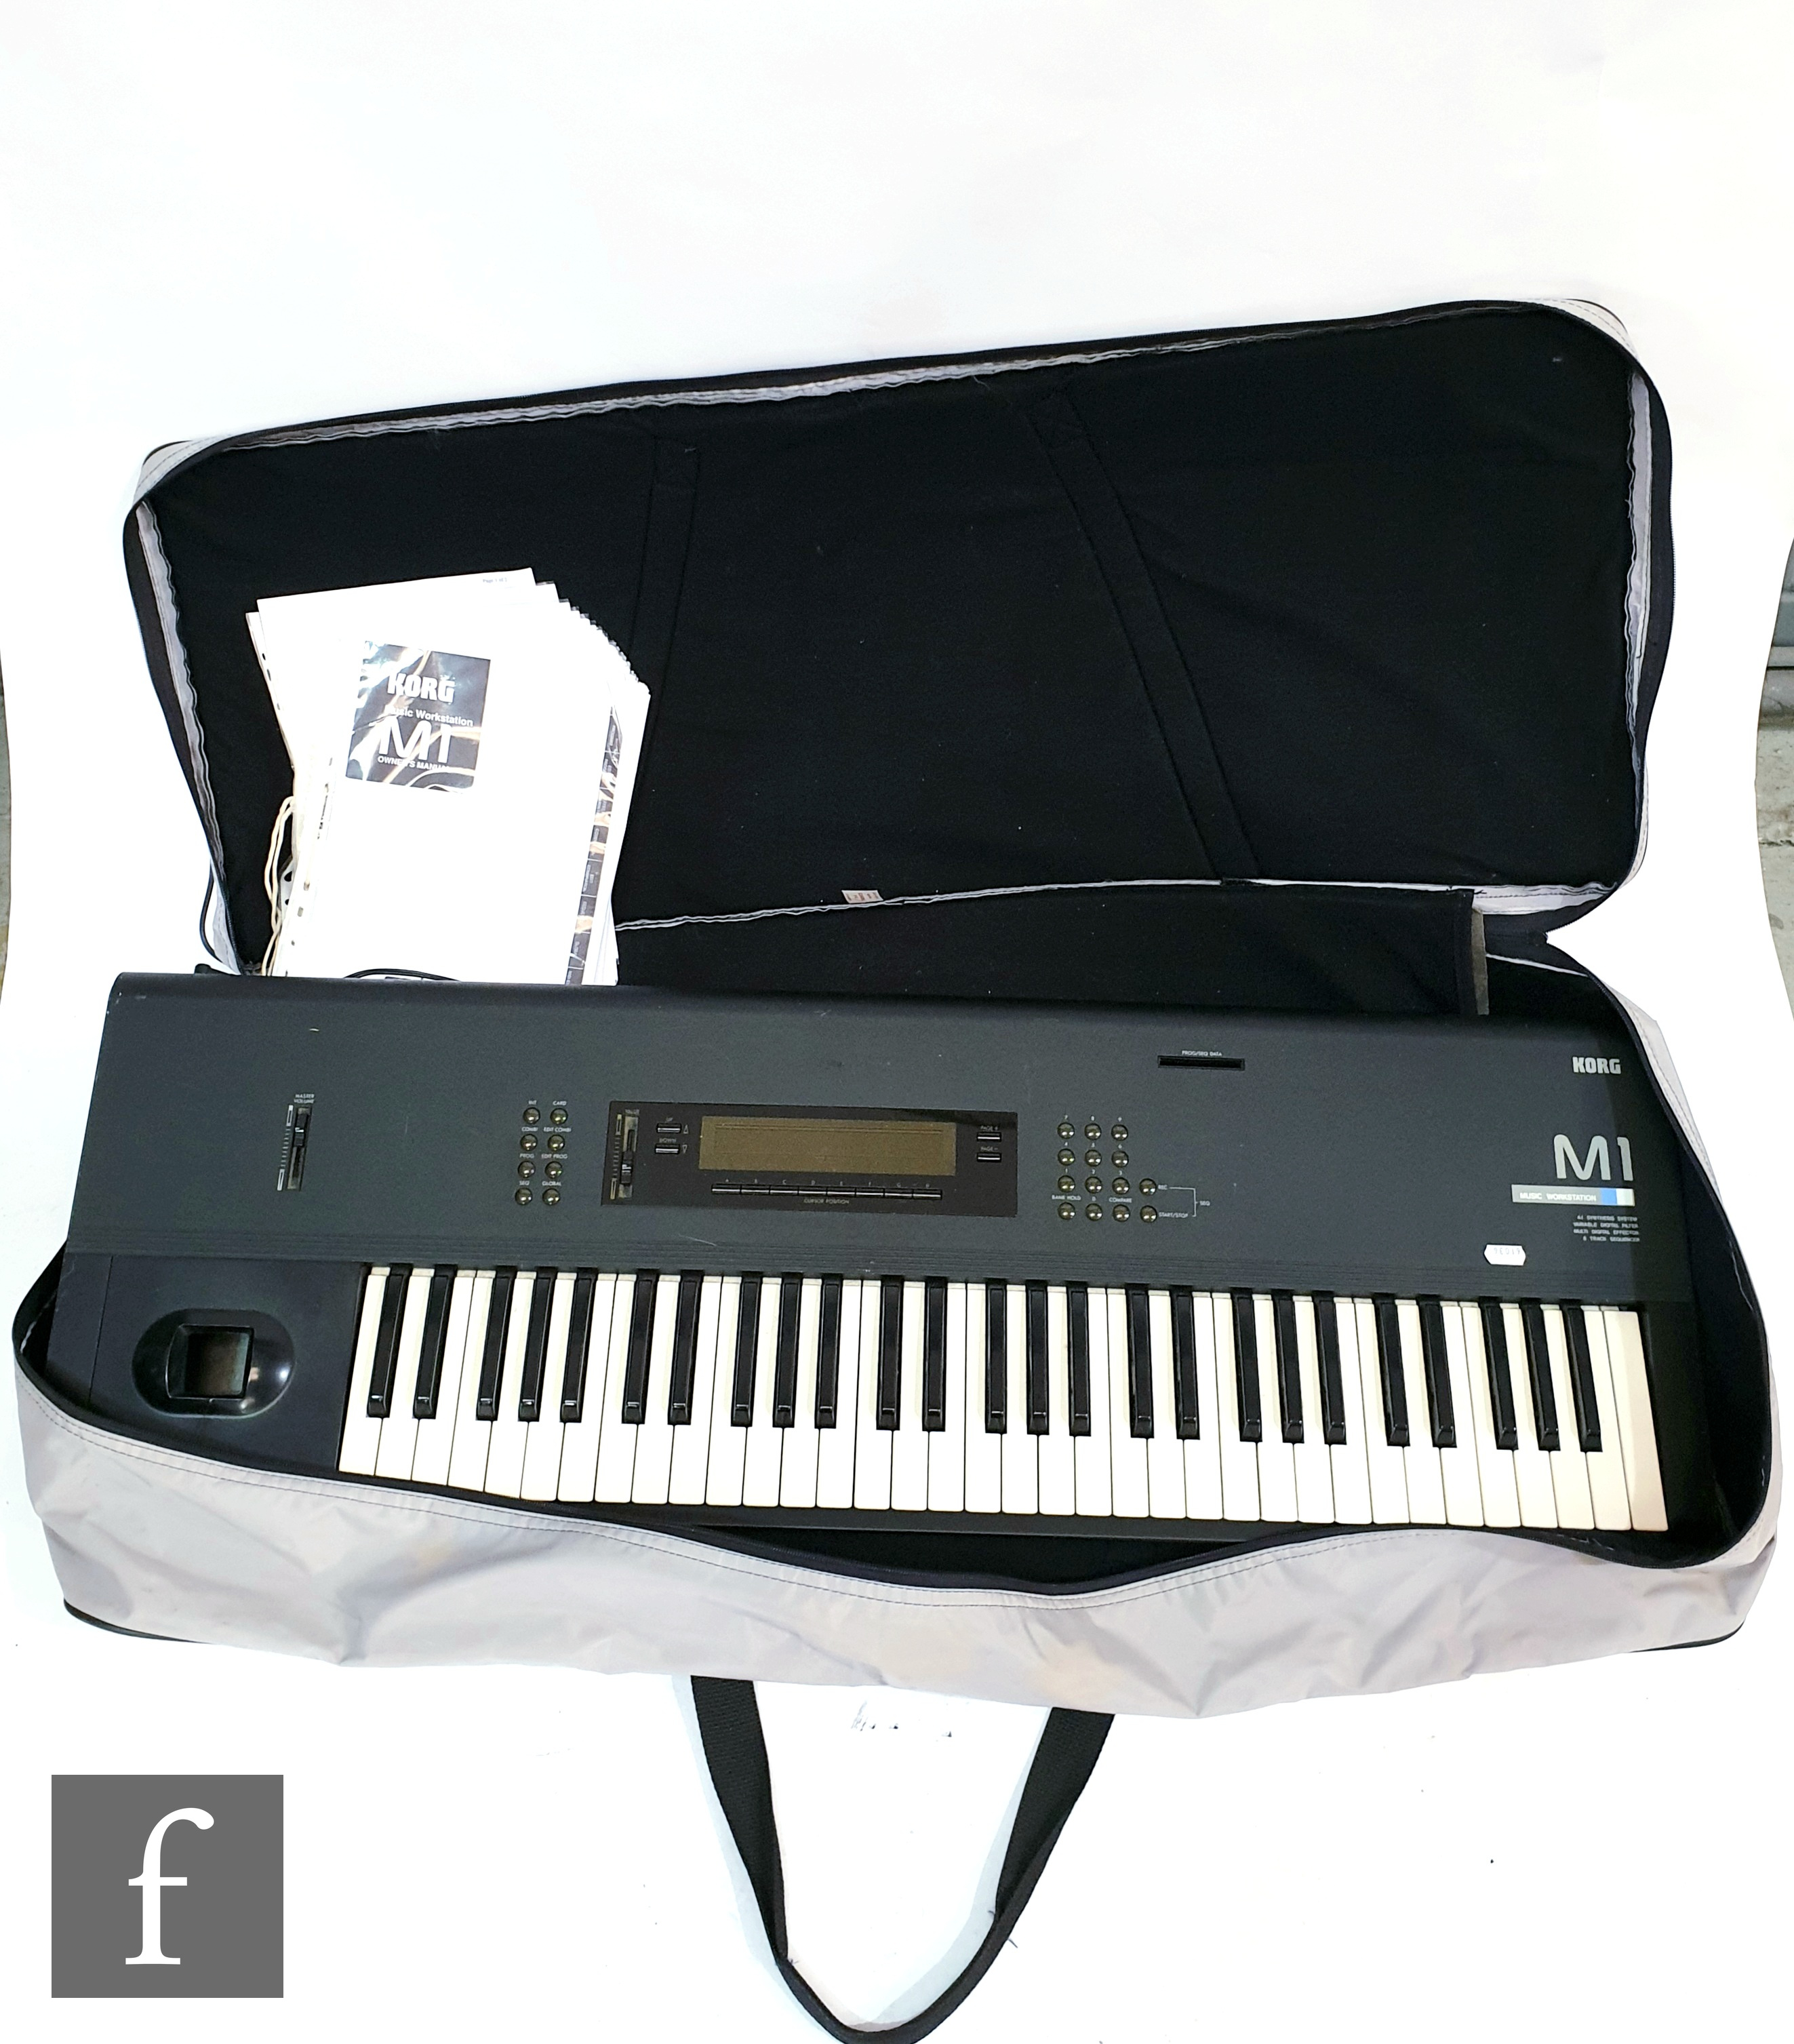 A Korg M1 Music station synthesizer, serial number 084274, sold with bag, leads and instruction